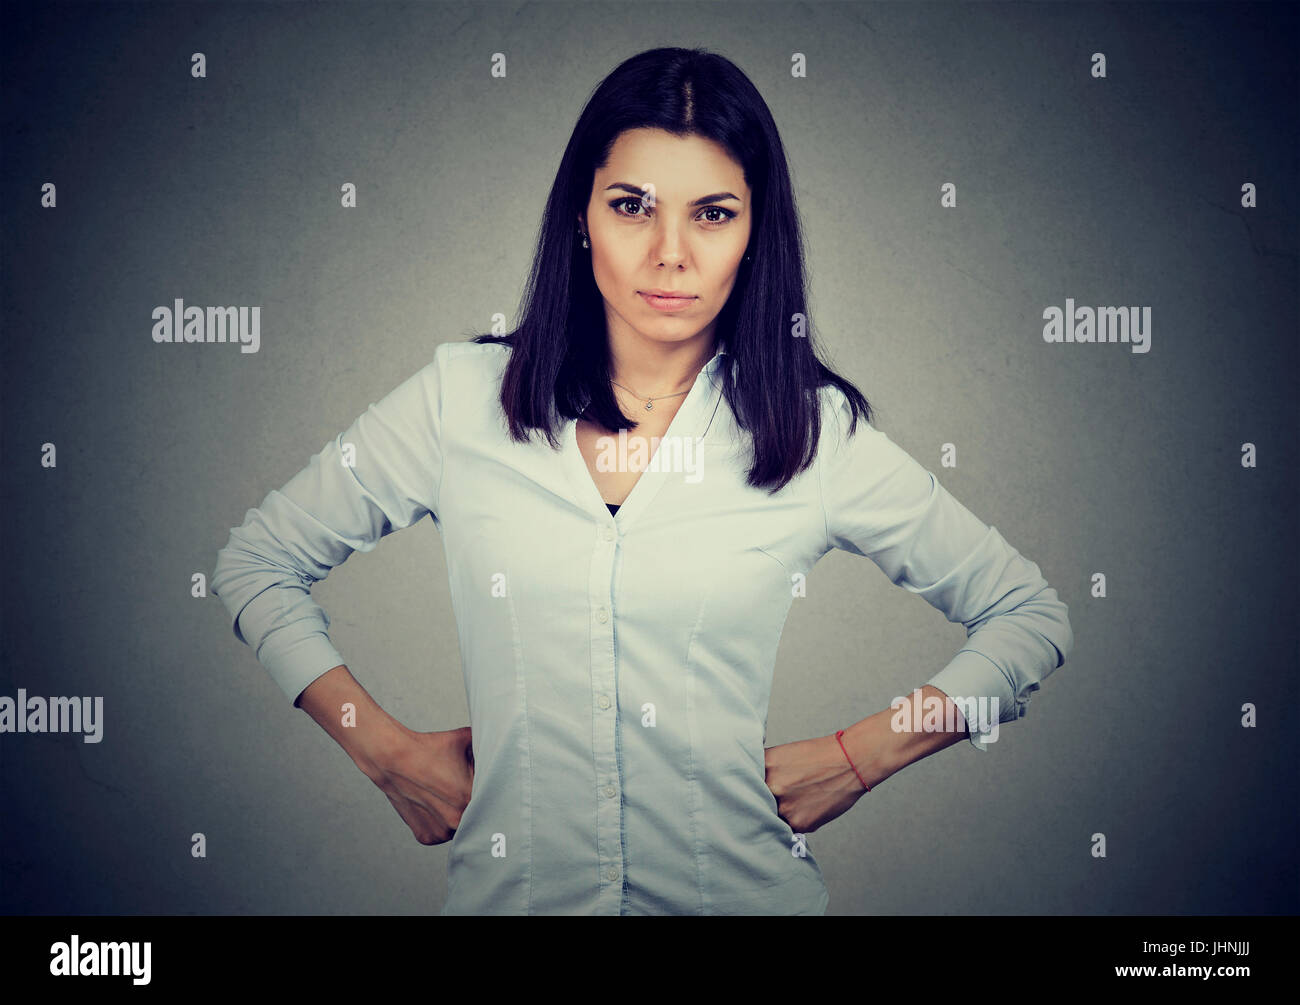 Angry brunette woman looking at camera - Stock Image